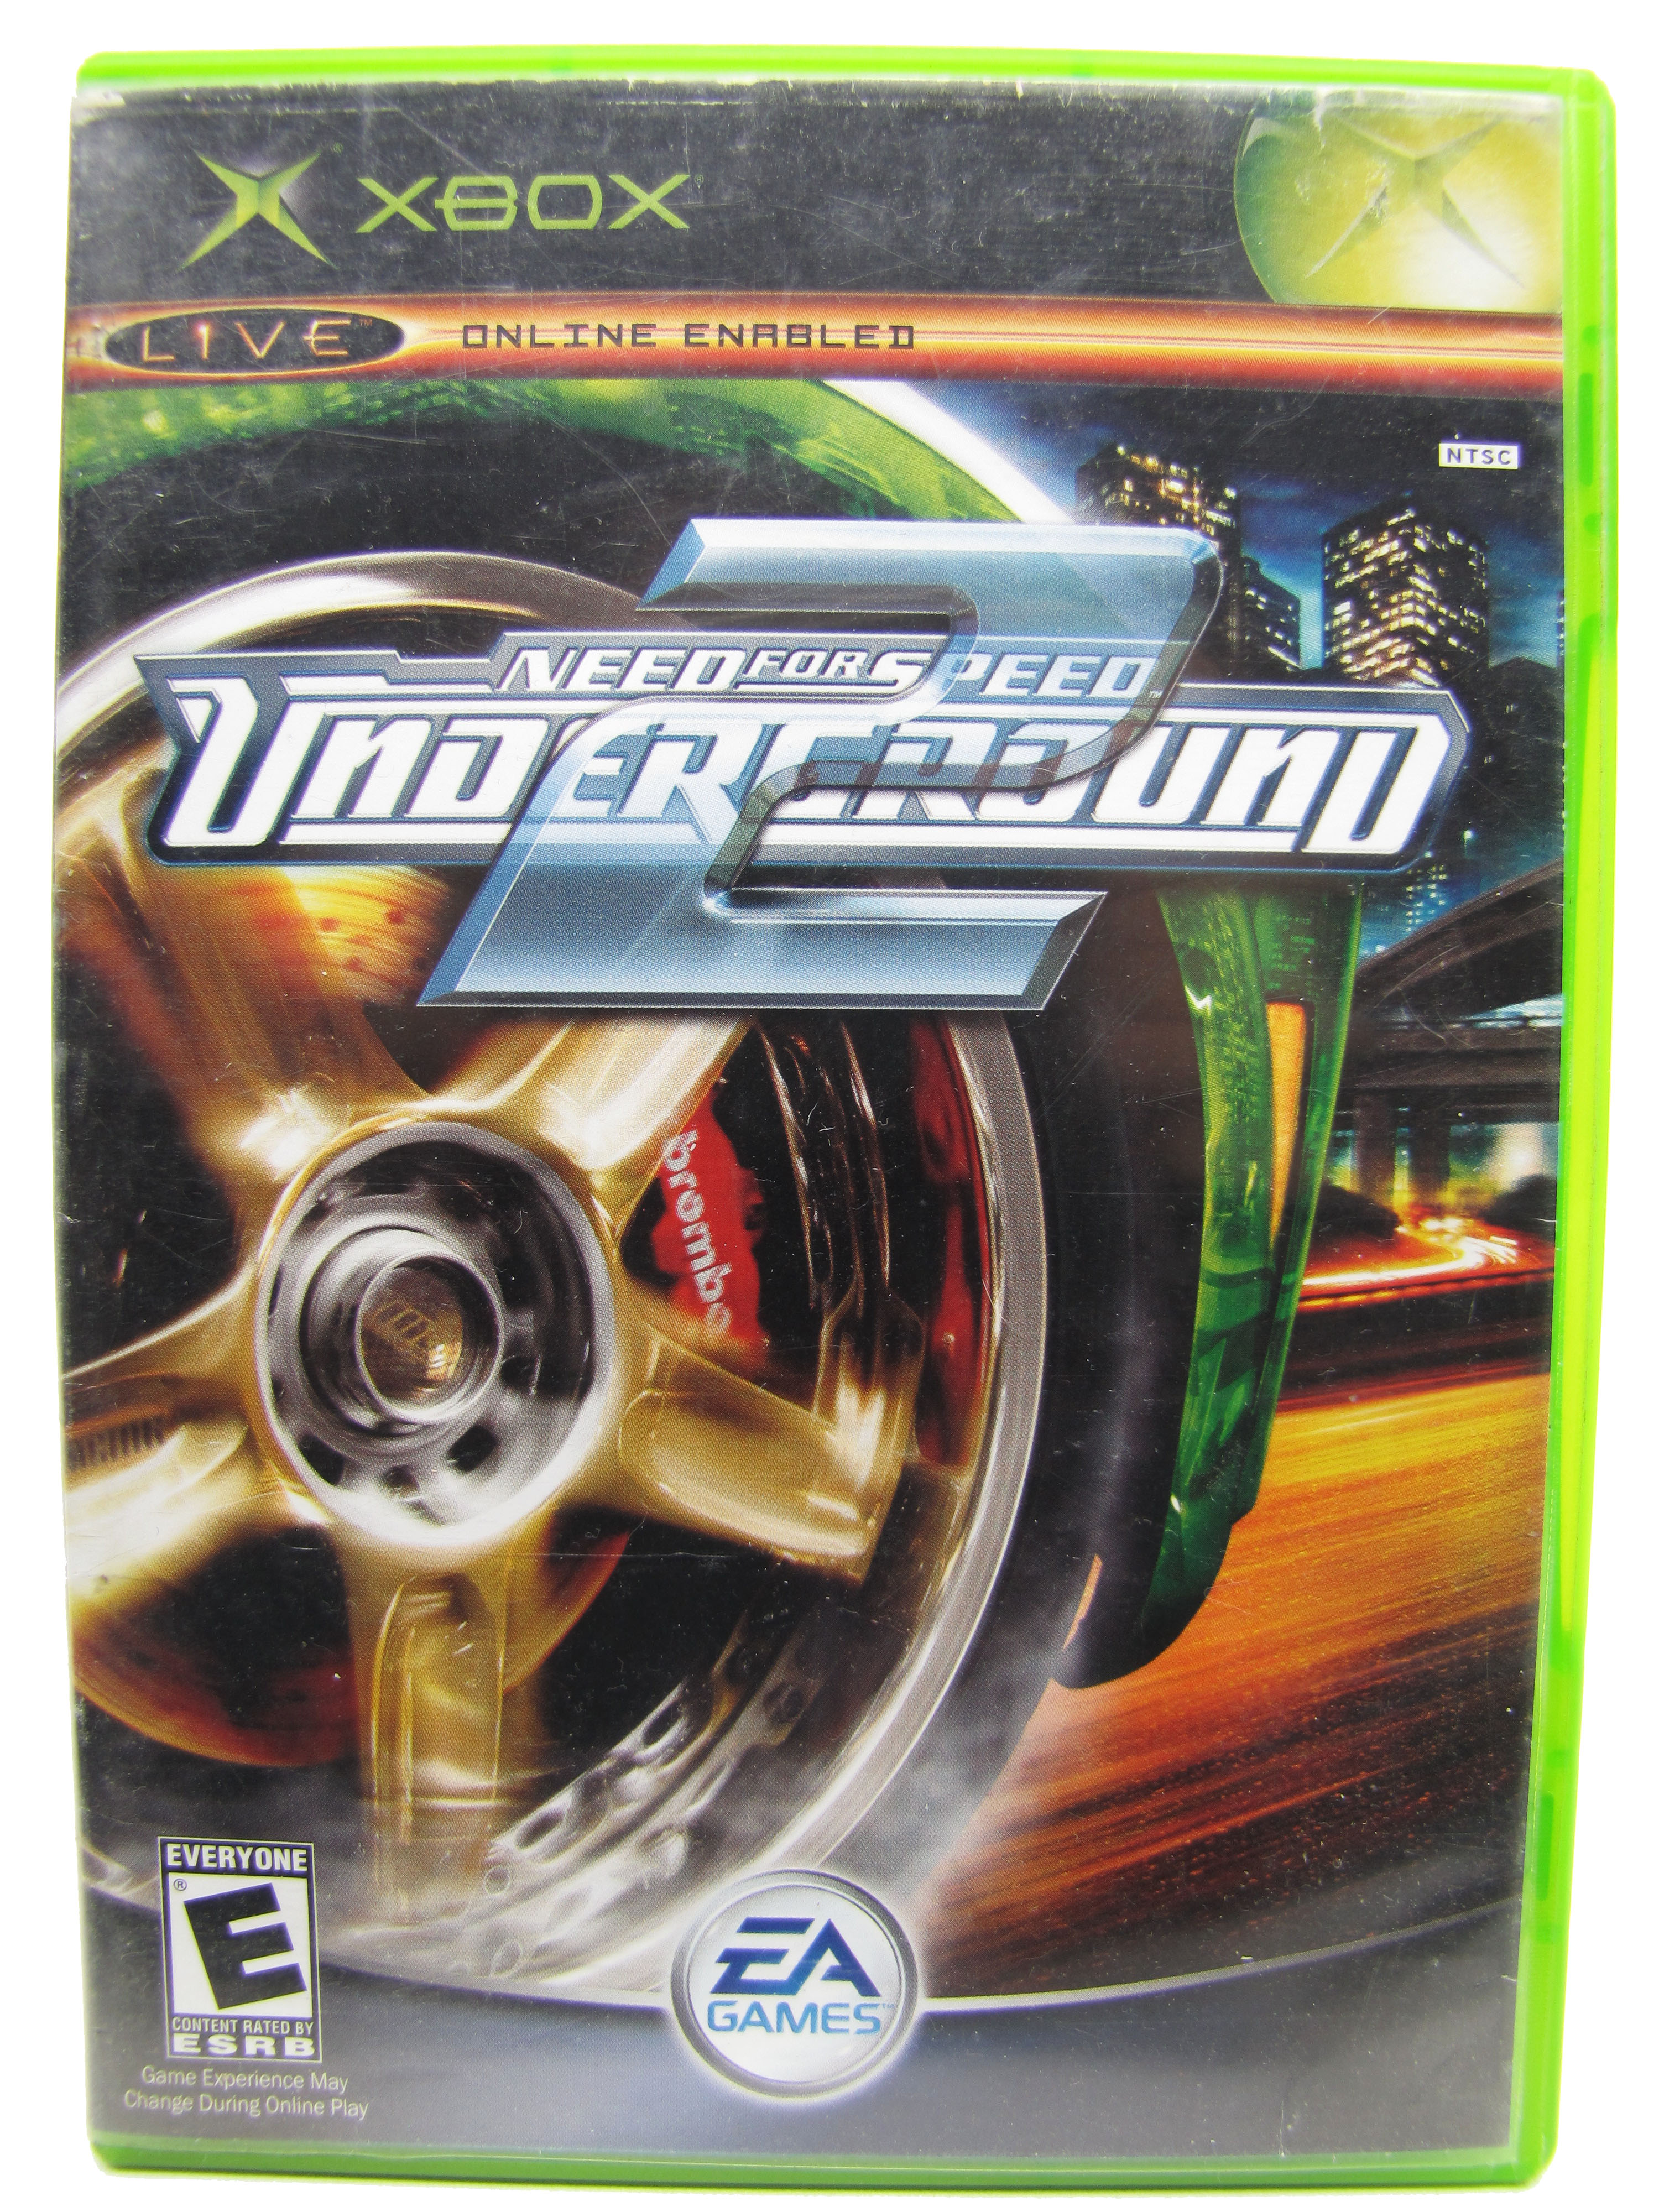 XBOX Need for Speed Underground 2